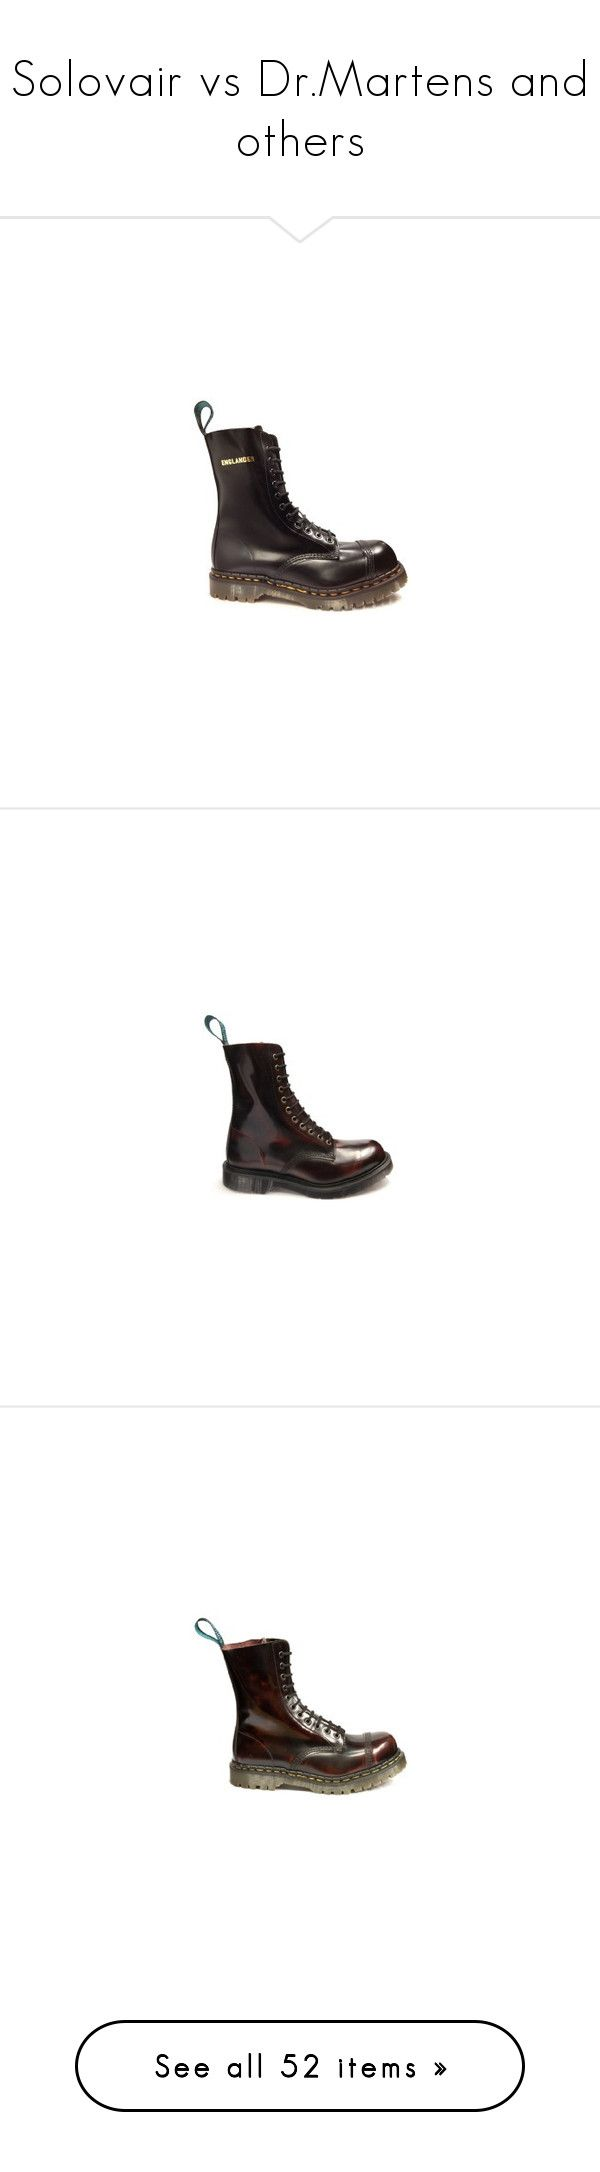 """""""Solovair vs Dr.Martens and others"""" by lorika-borika on Polyvore featuring shoes, boots, real leather boots, leather steel toe boots, black shoes, safety toe boots, steel toe shoes, genuine leather shoes, burgundy shoes и genuine leather boots"""